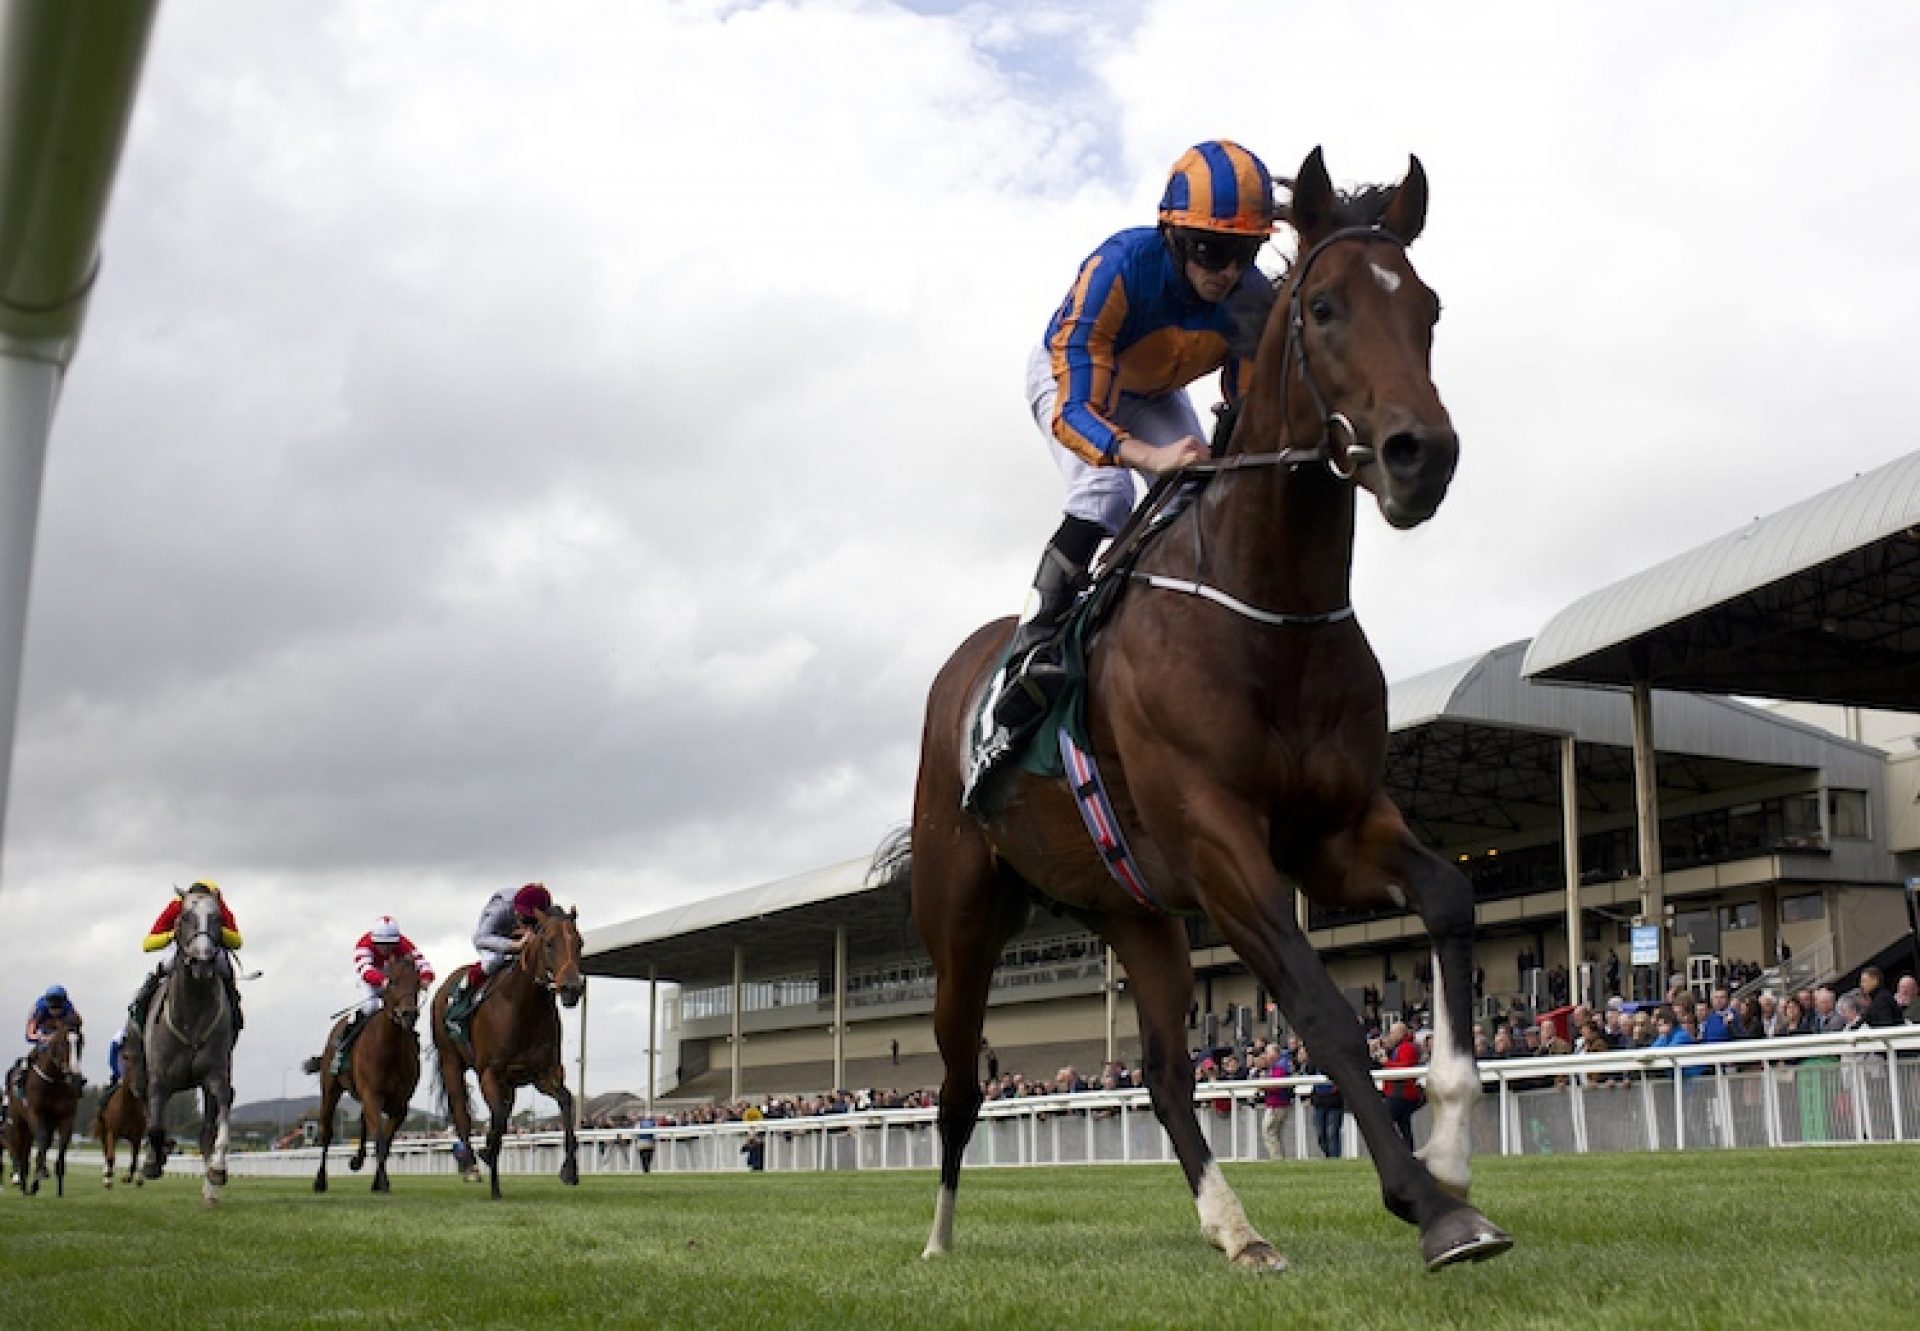 Churchill winning the G1 National Stakes at the Curragh